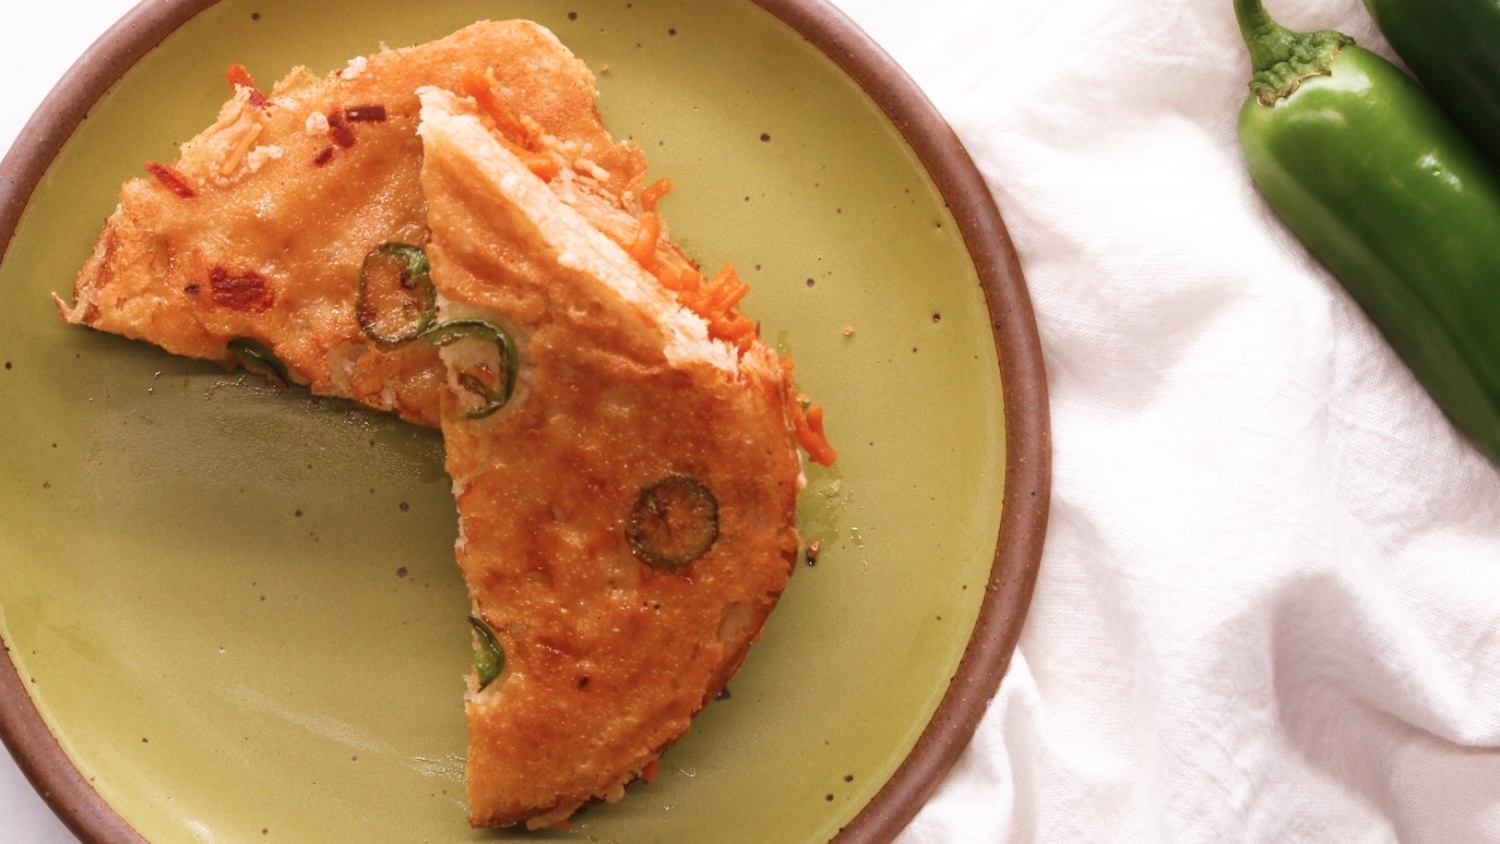 How to Make Chrissy Teigen's Famous Grilled Cheese Vegan